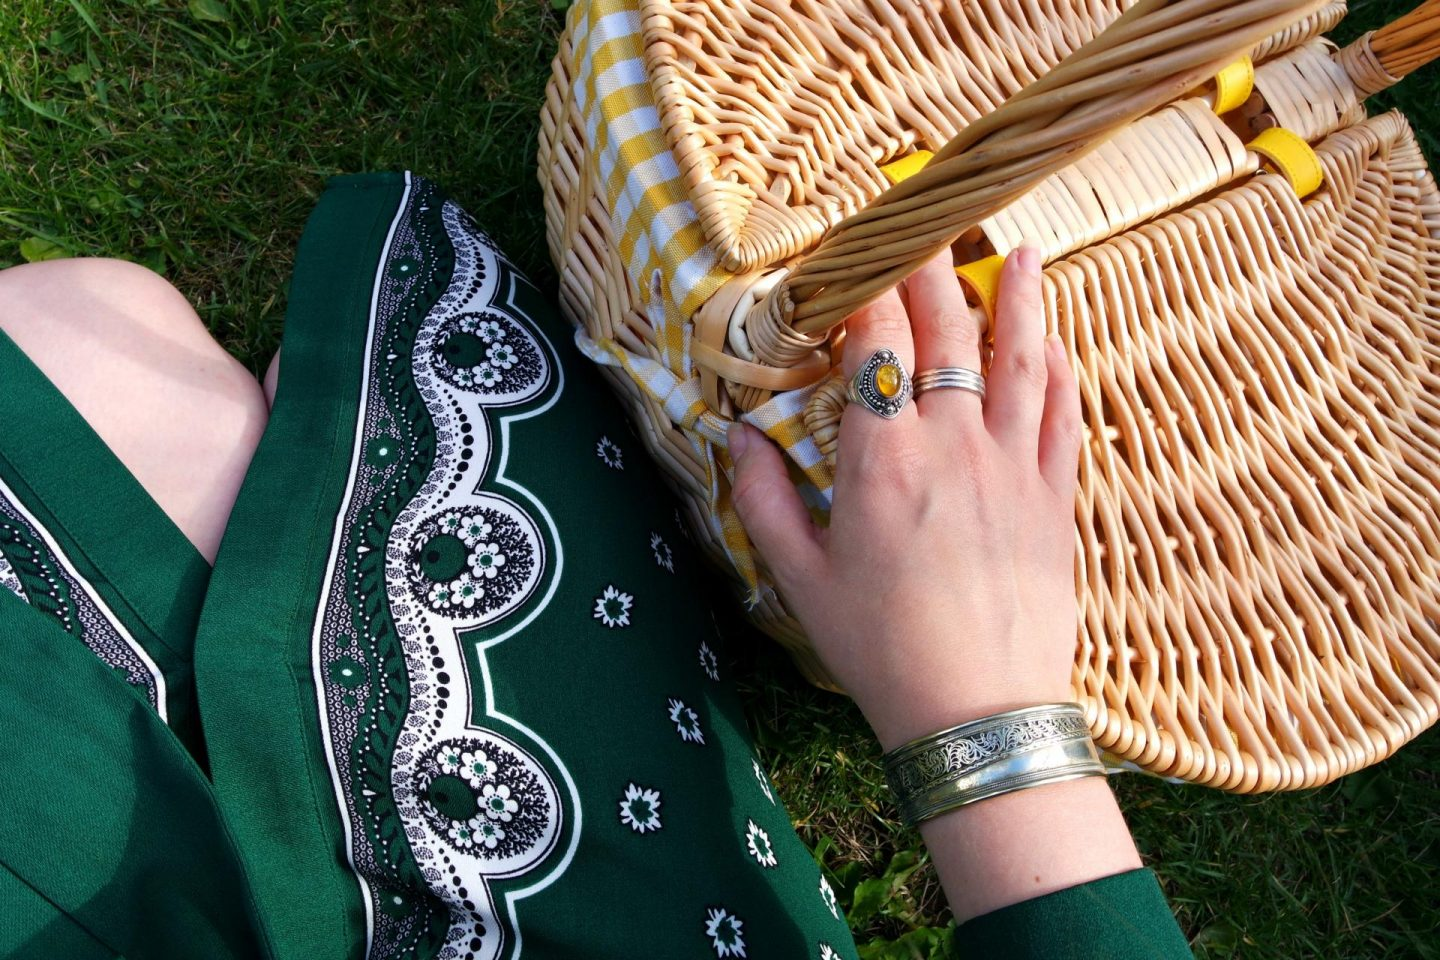 shirst dress and picnic basket